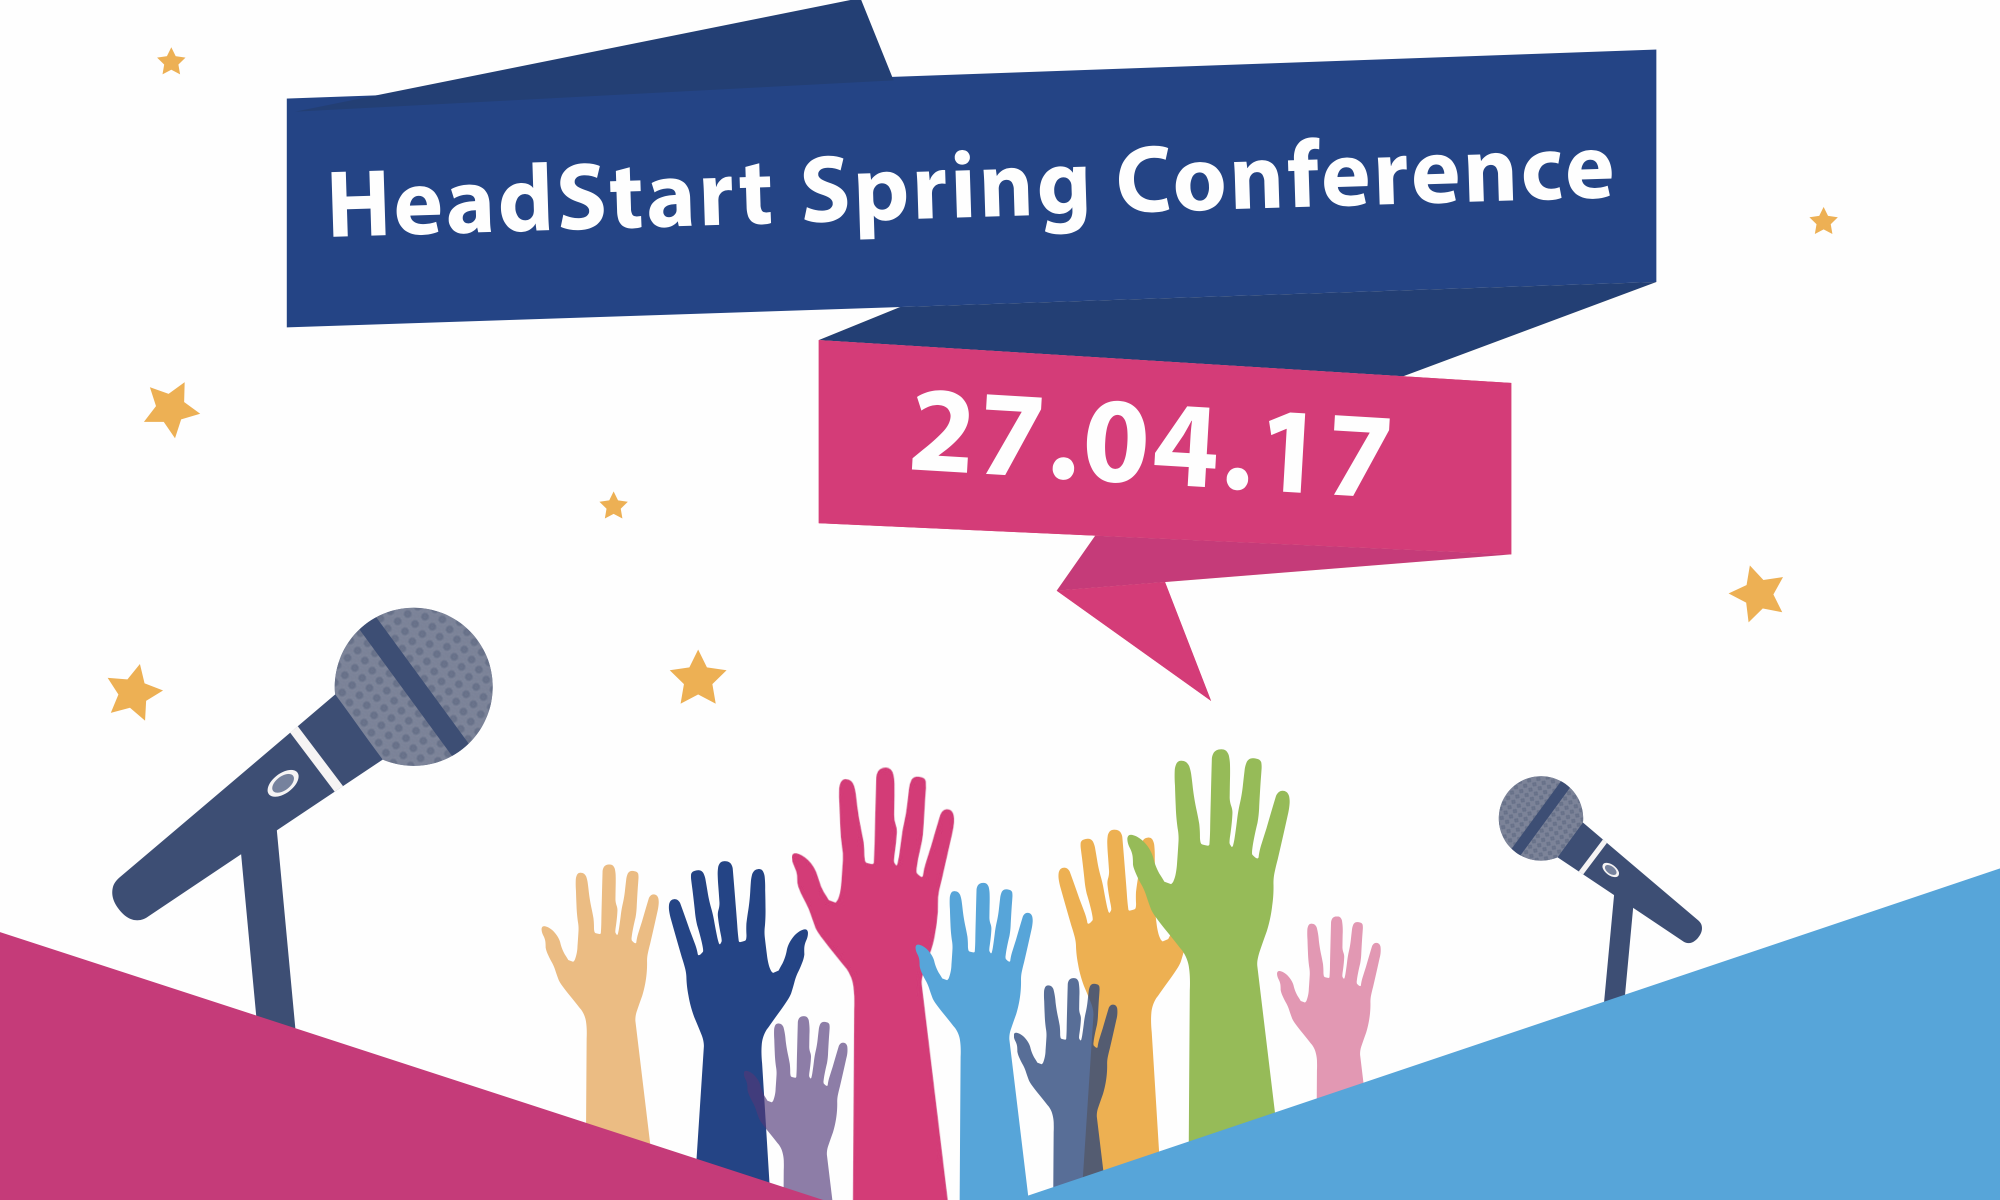 #hsconf17 Headstart Spring Conference, 27 Apr 2017